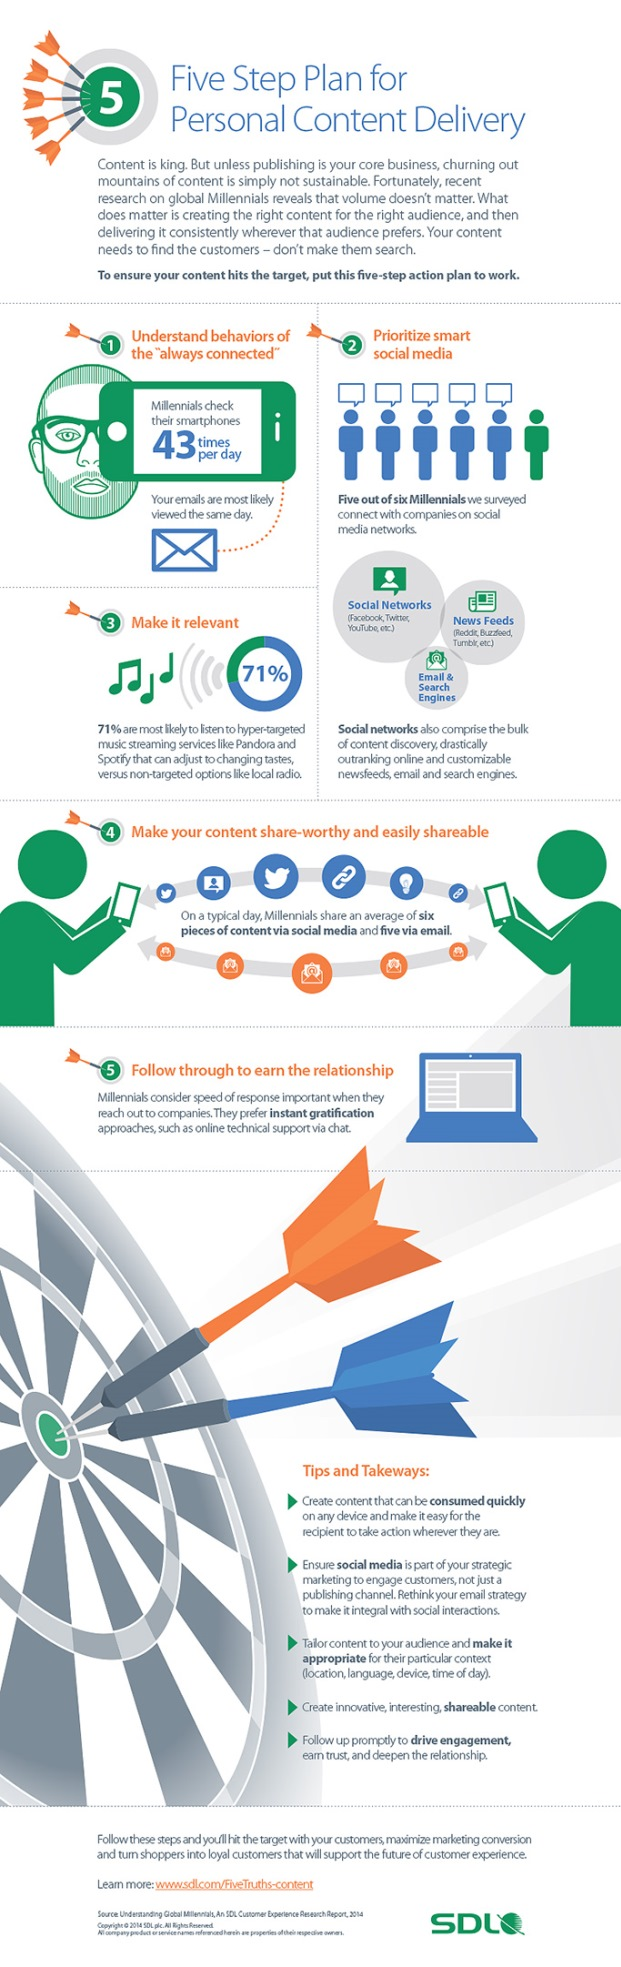 Social media drives content discovery with millennials